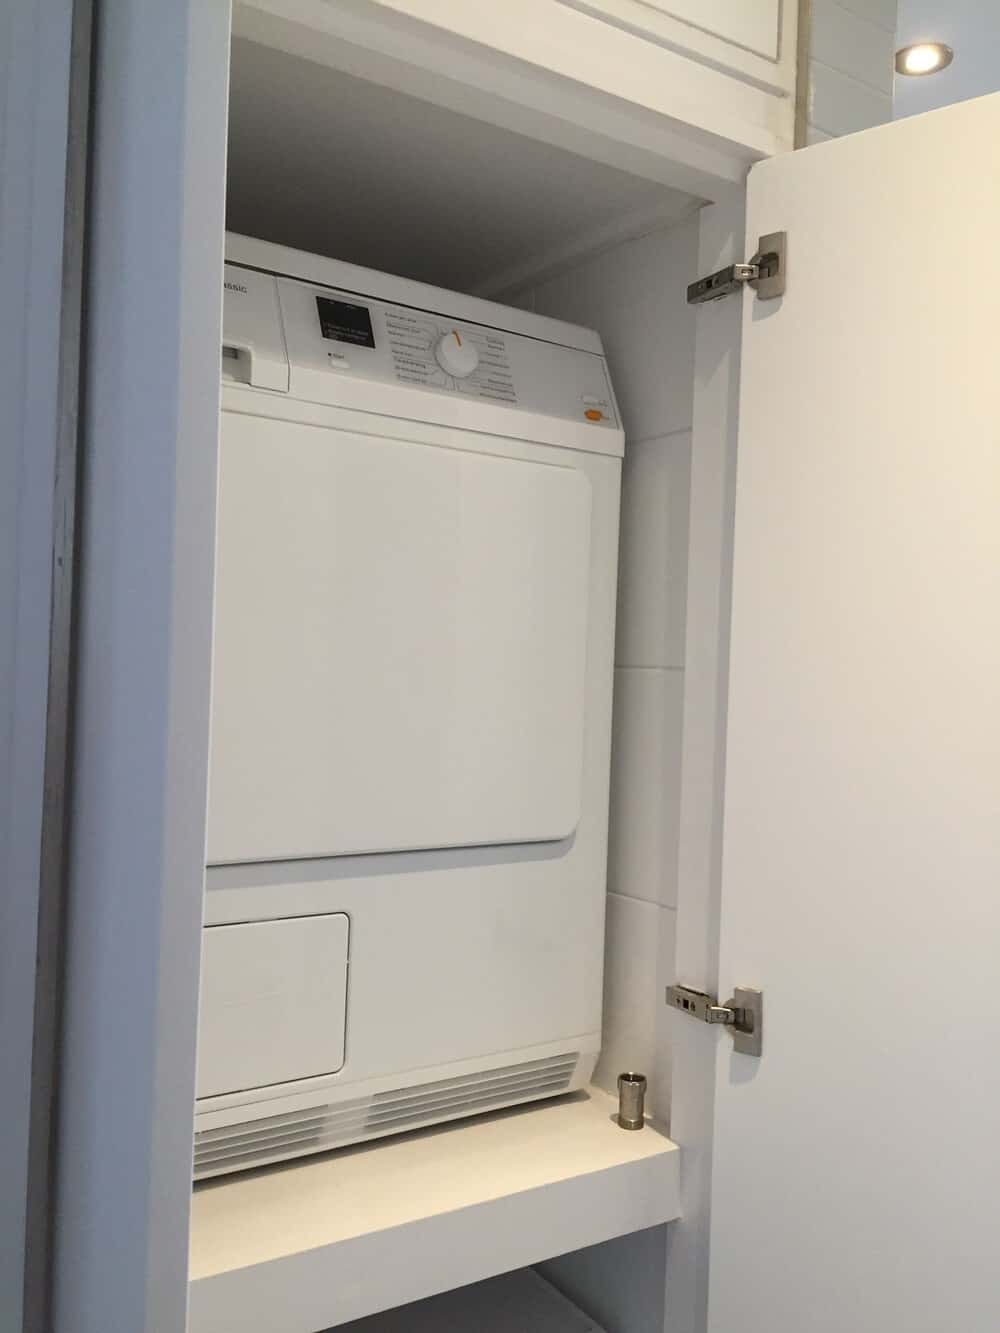 washer dryer in a closet